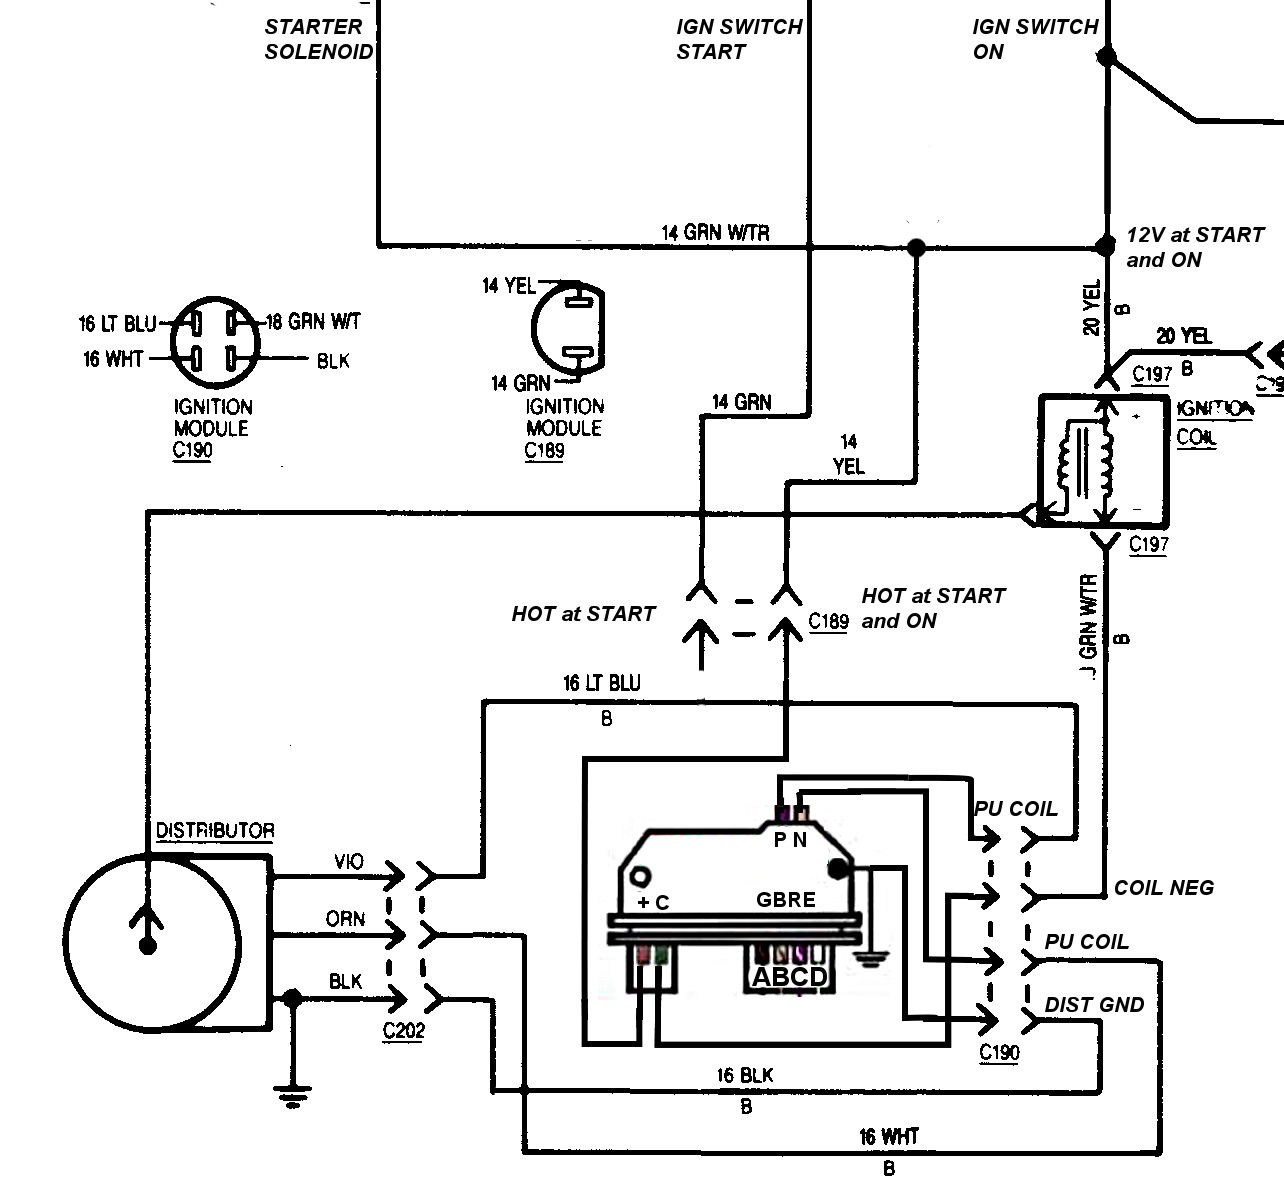 TBI+Wiring+1 troubled child gm tbi ignition wiring hei ignition wiring diagram at bakdesigns.co